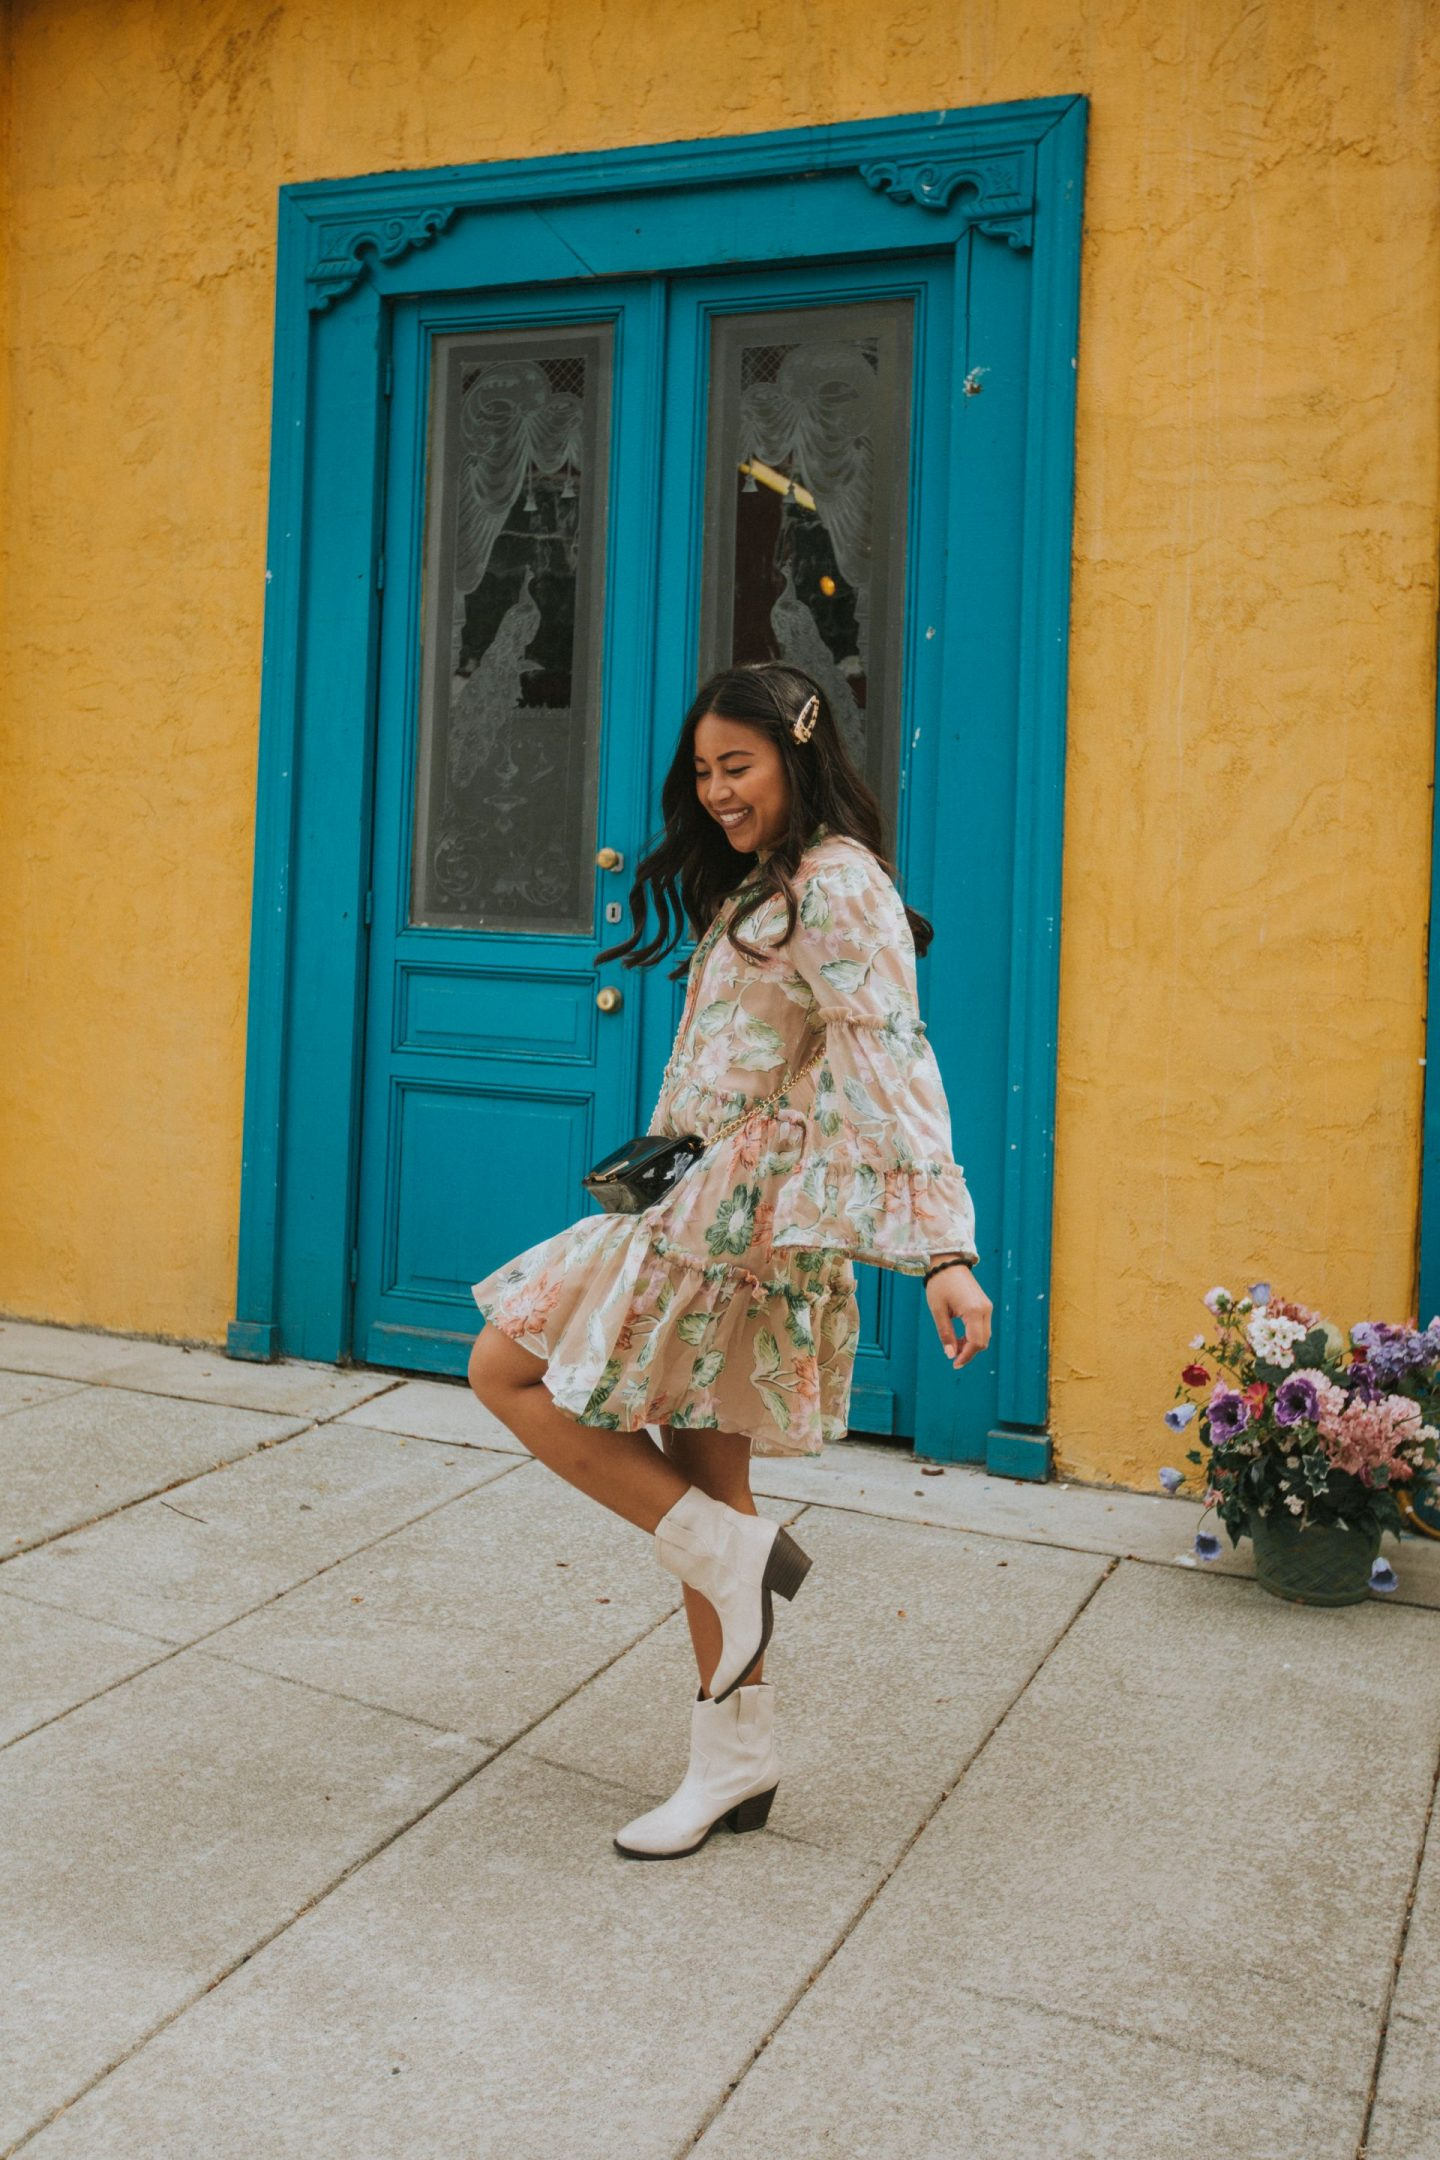 6 Cute Fall Outfit Ideas You Can Wear